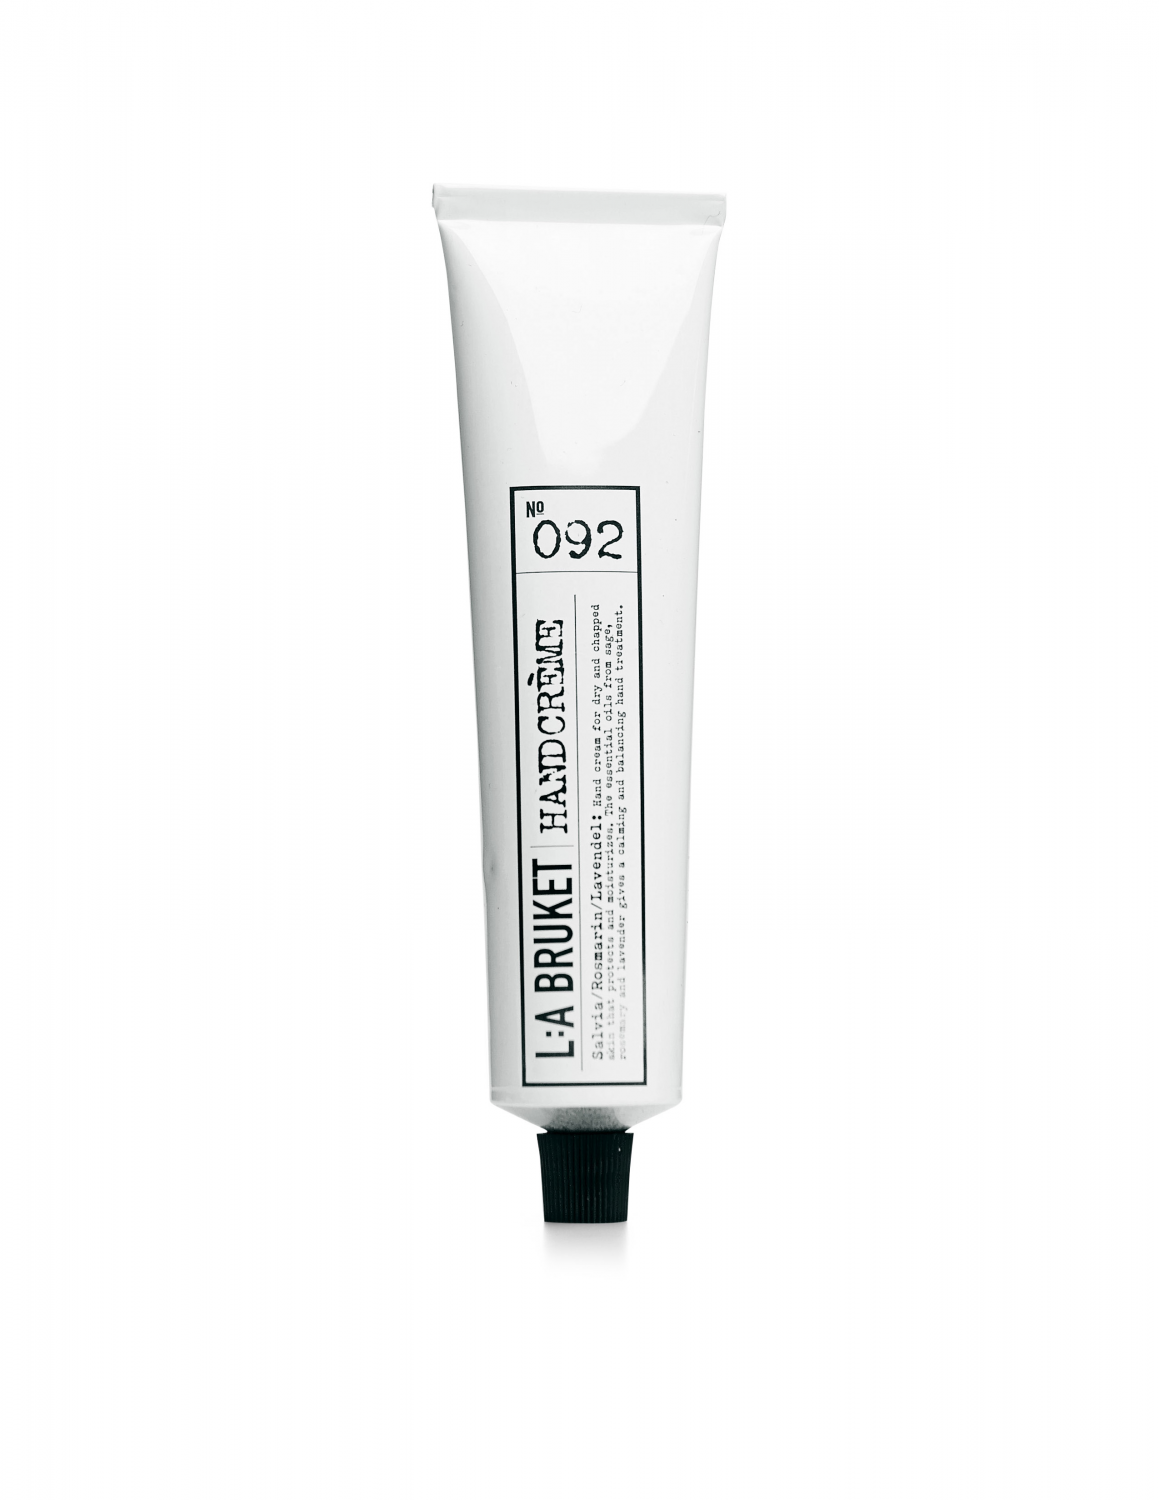 Hand cream in a white packaging with scents of sage, rosemary and lavender, containing 70 ml.